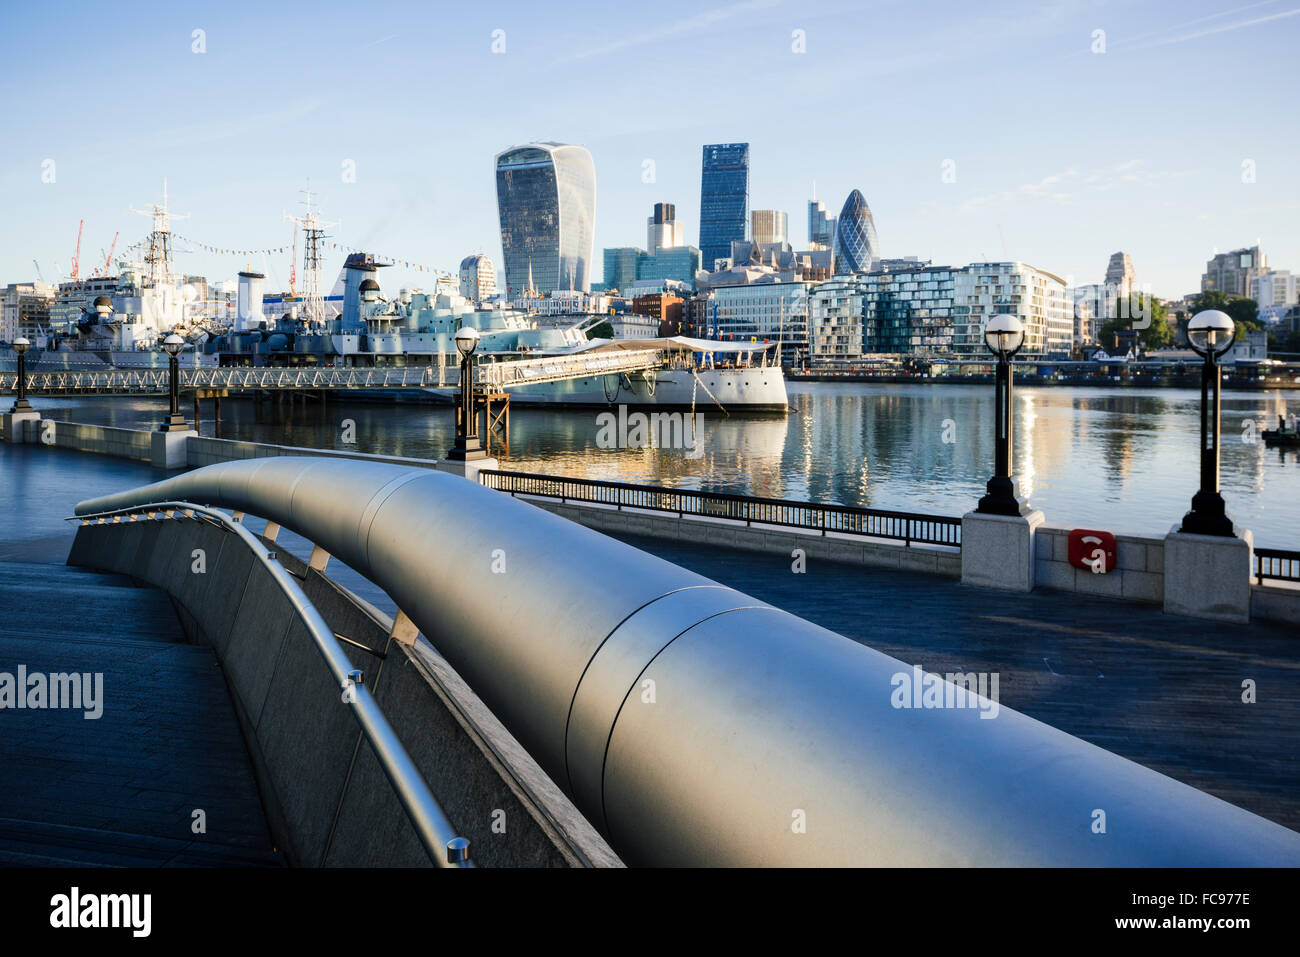 View of City from More London Place, London, England, United Kingdom, Europe - Stock Image